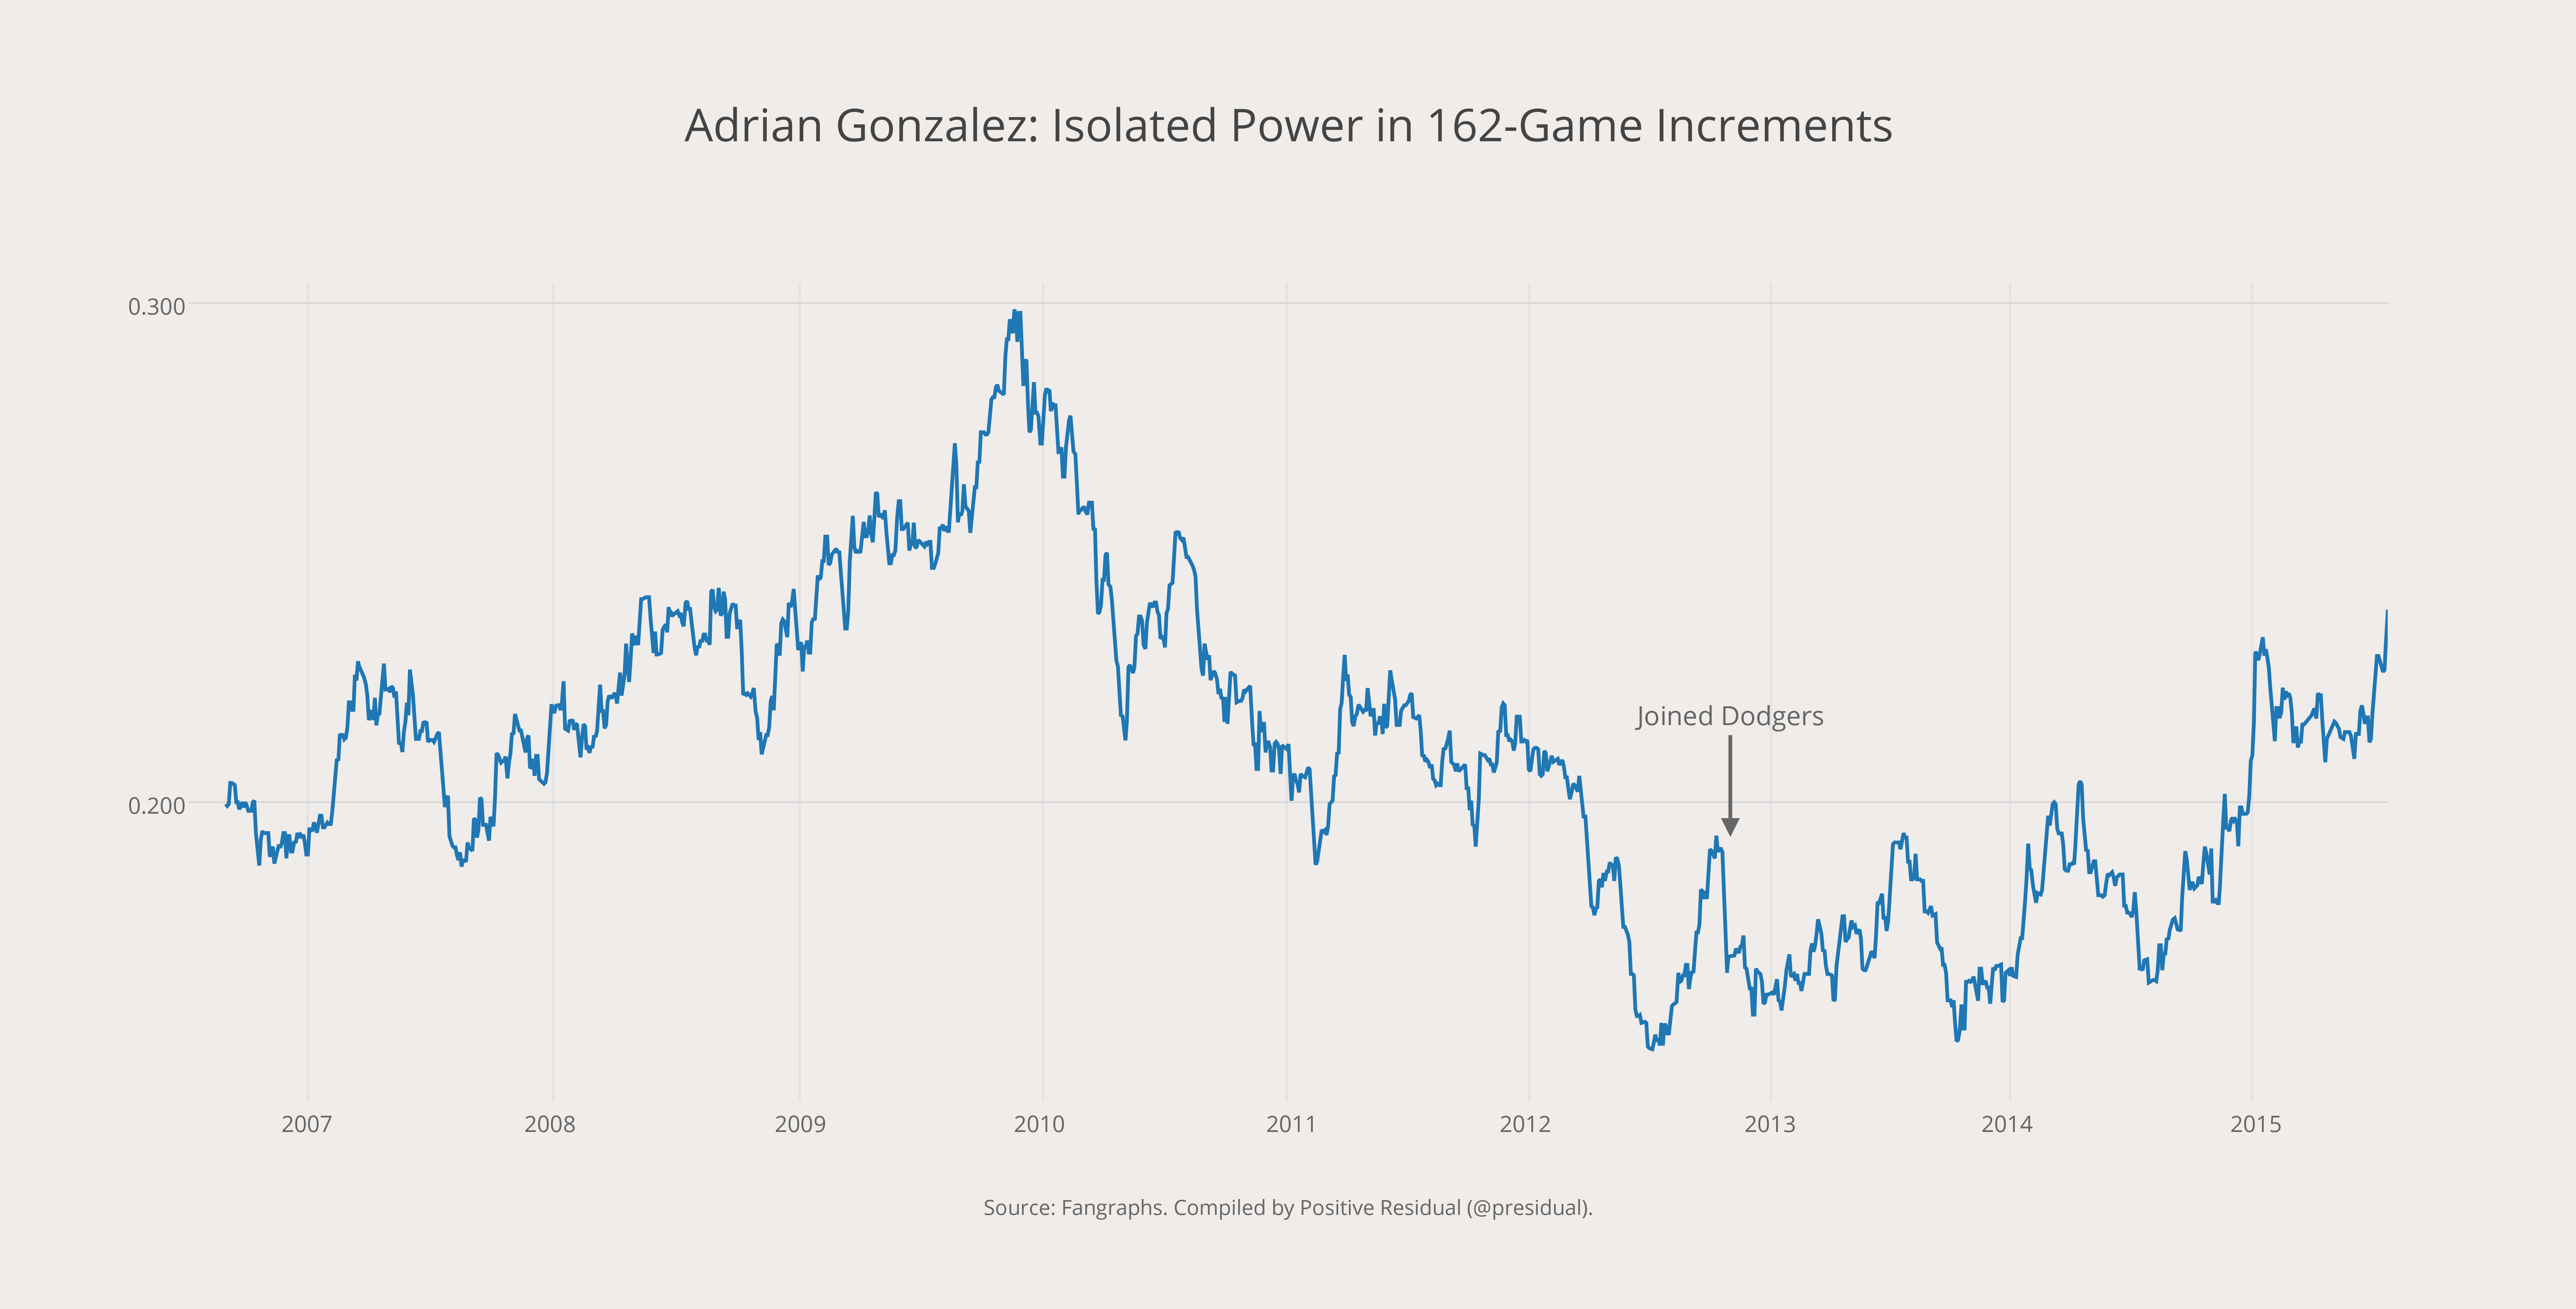 Adrian Gonzalez- Isolated Power in 162-Game Increments (1)